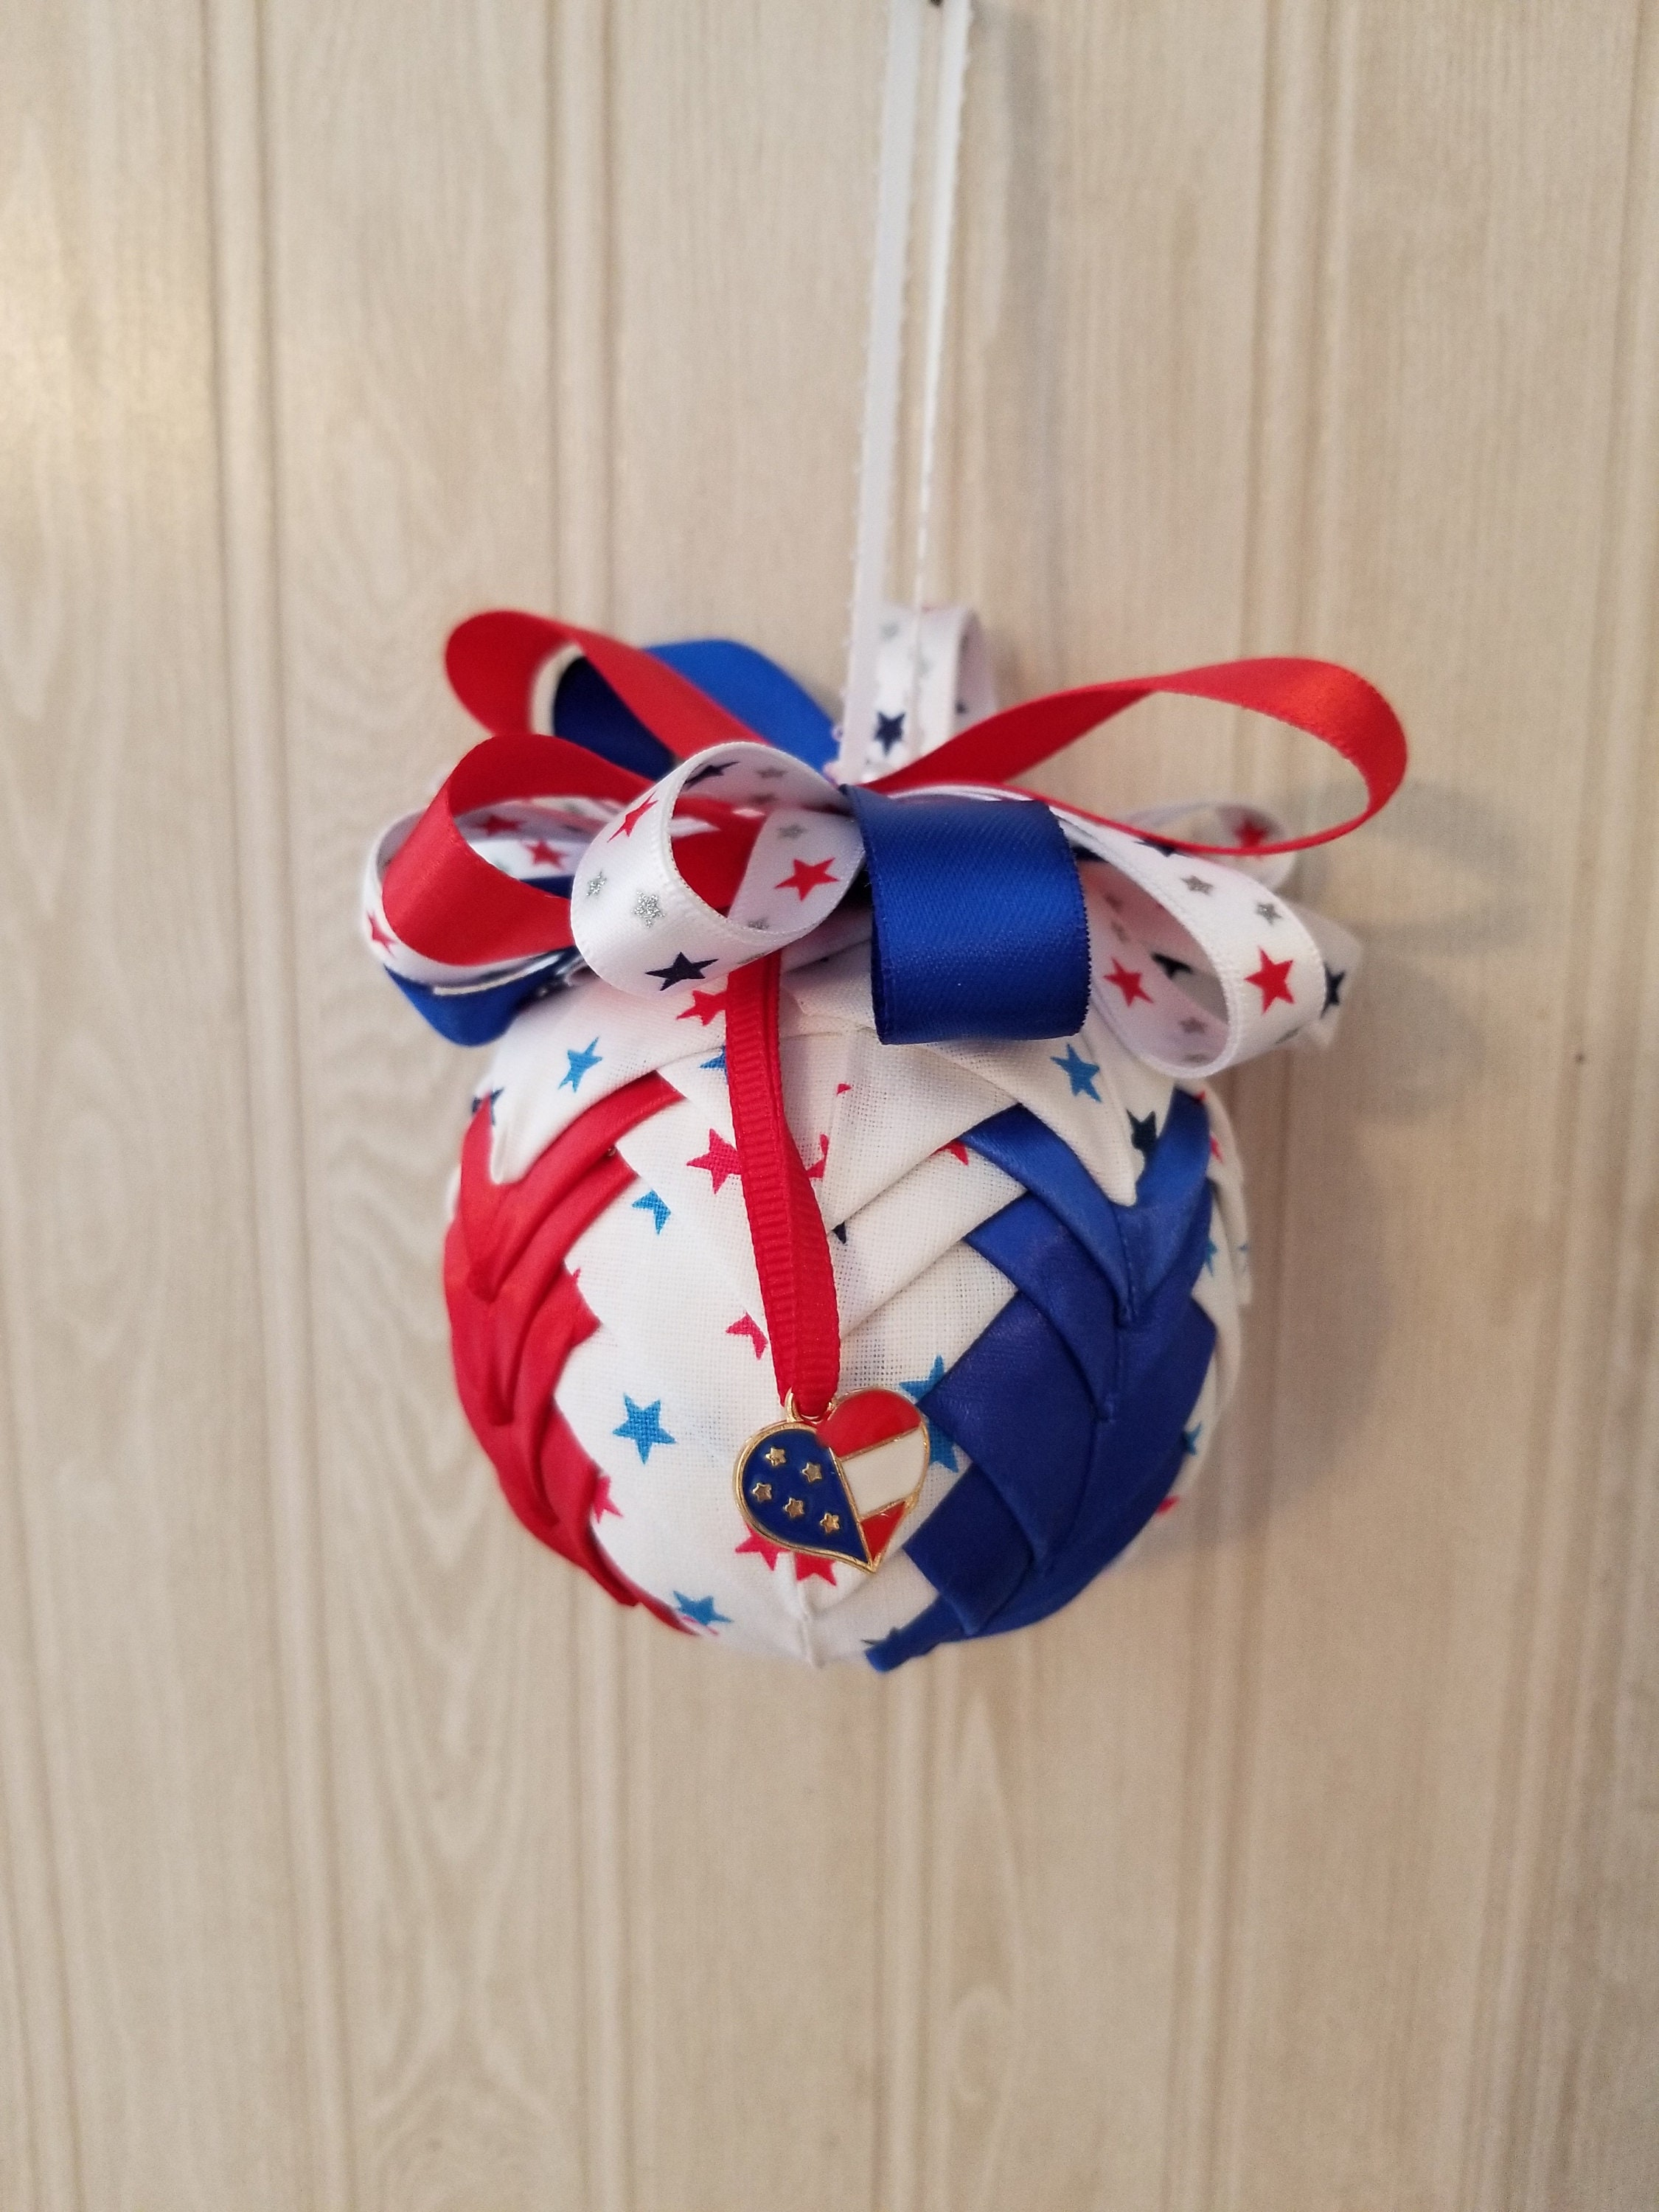 Festive Patriotic Fabric Ornament with Charm